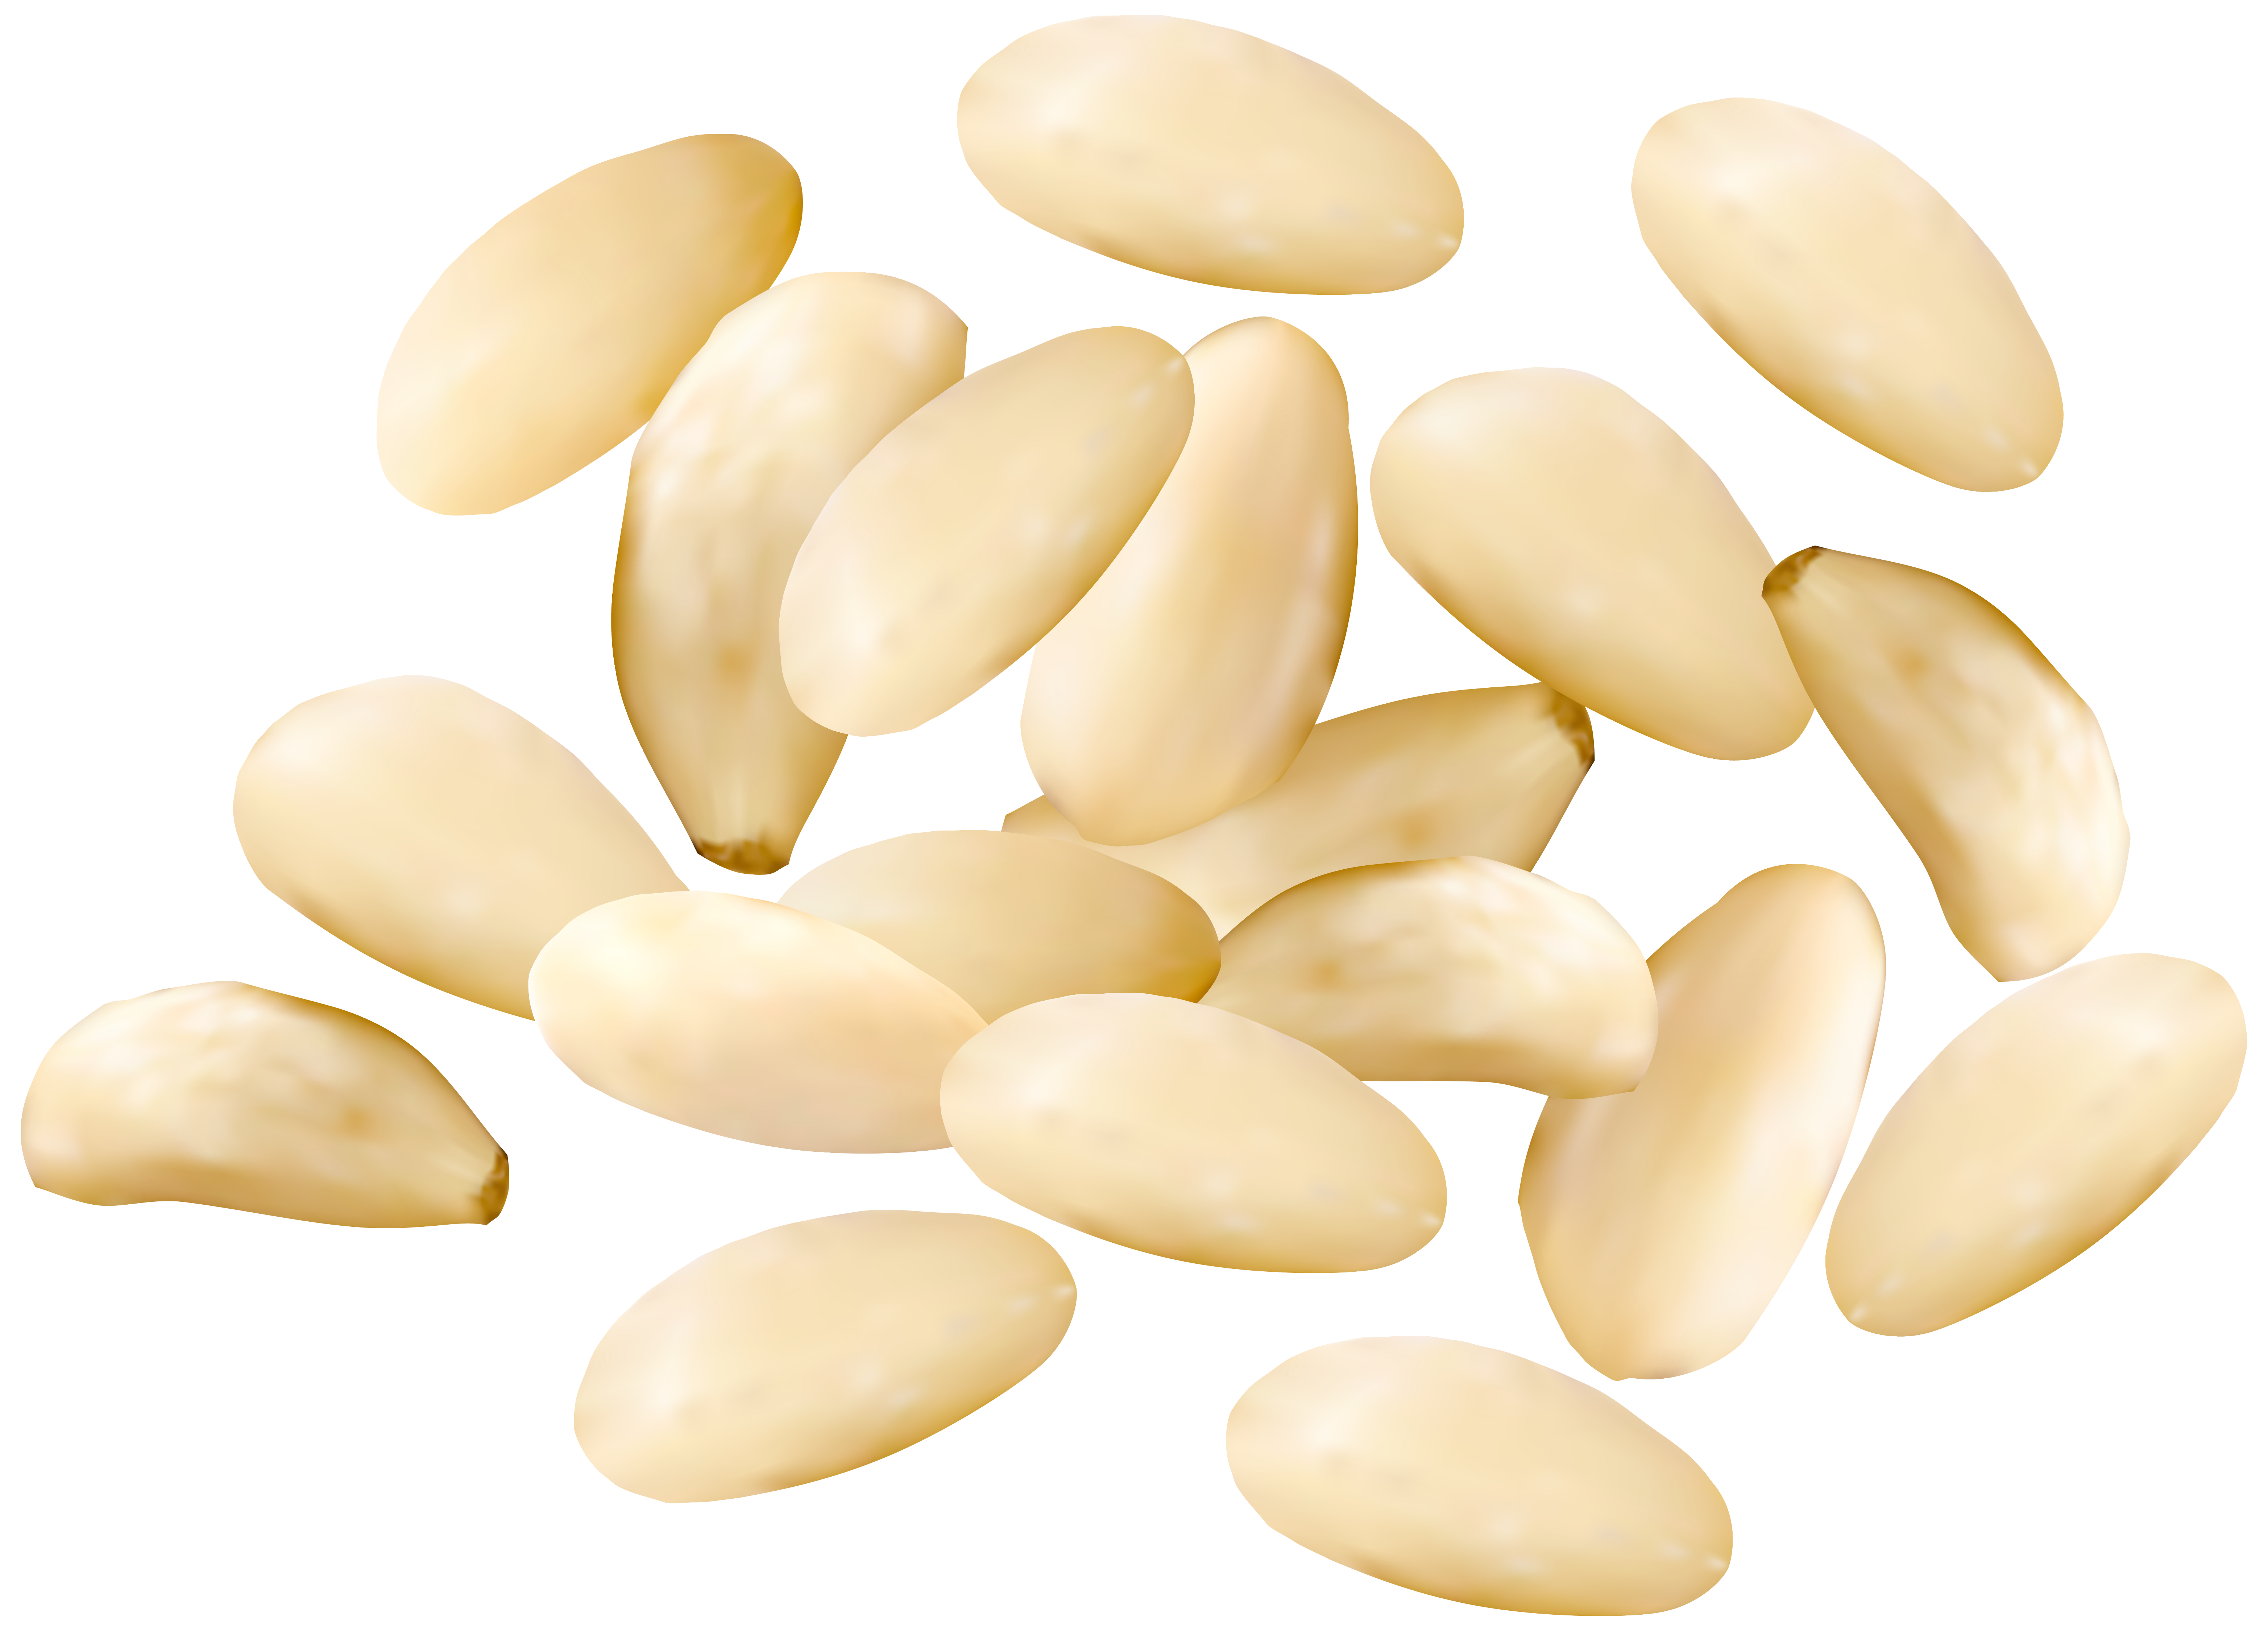 Pine nuts png. Clipart image gallery yopriceville